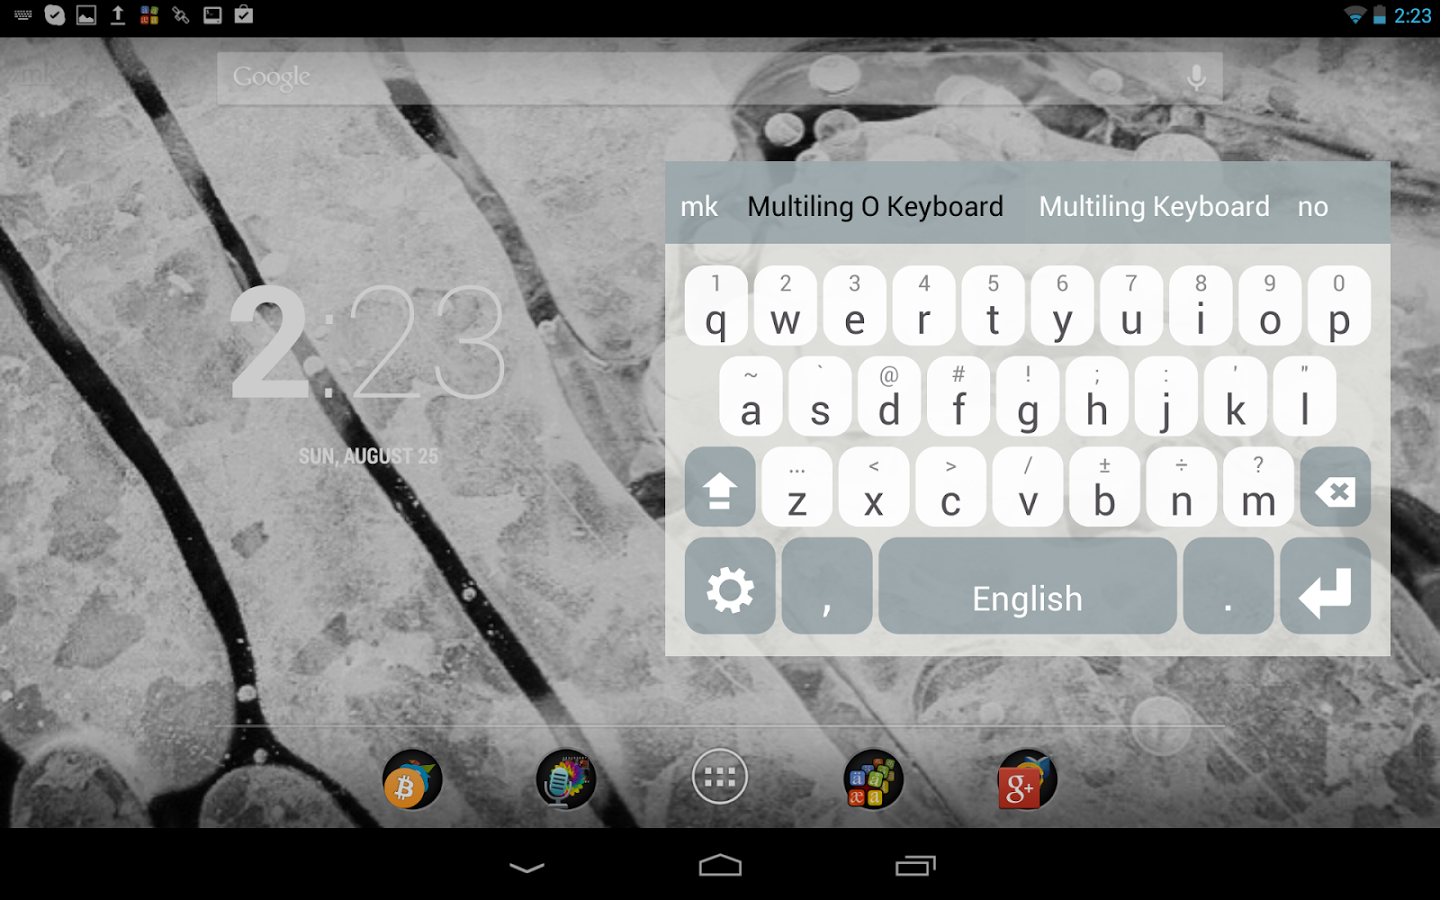 Touchpal keyboard alternative with slide down for symbols